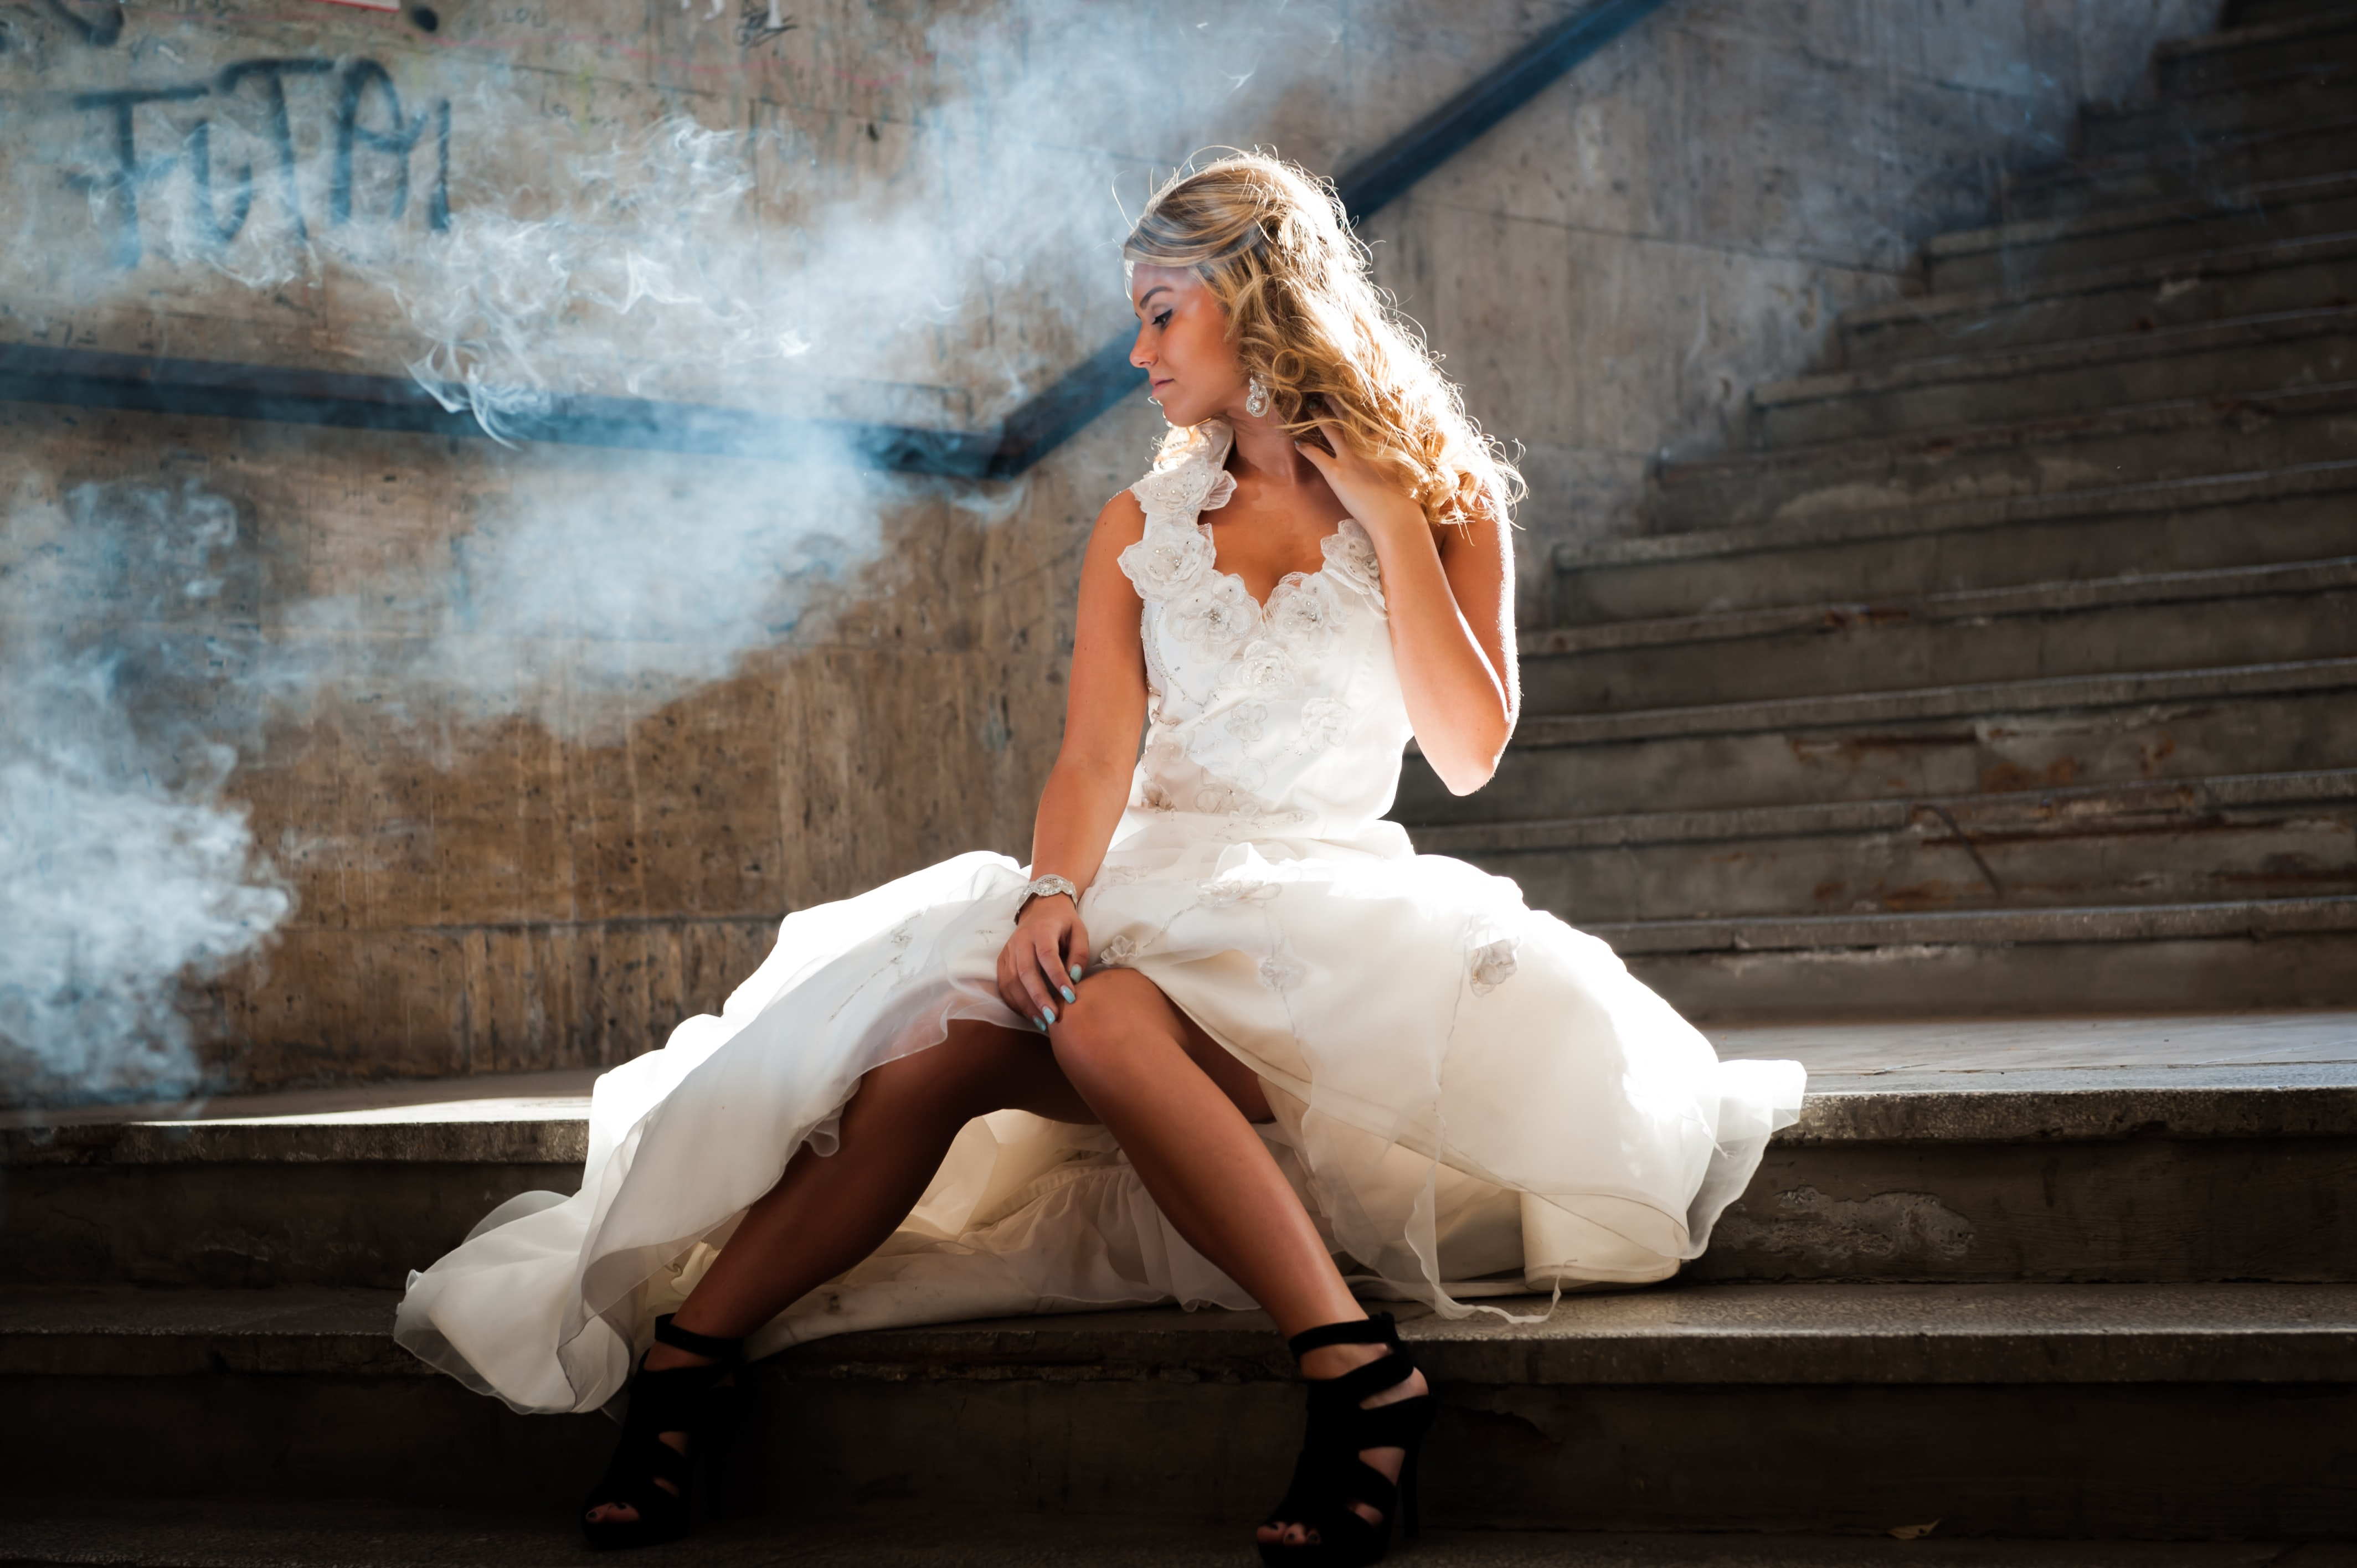 Woman in a wedding gown siting on a smoky subway staircase